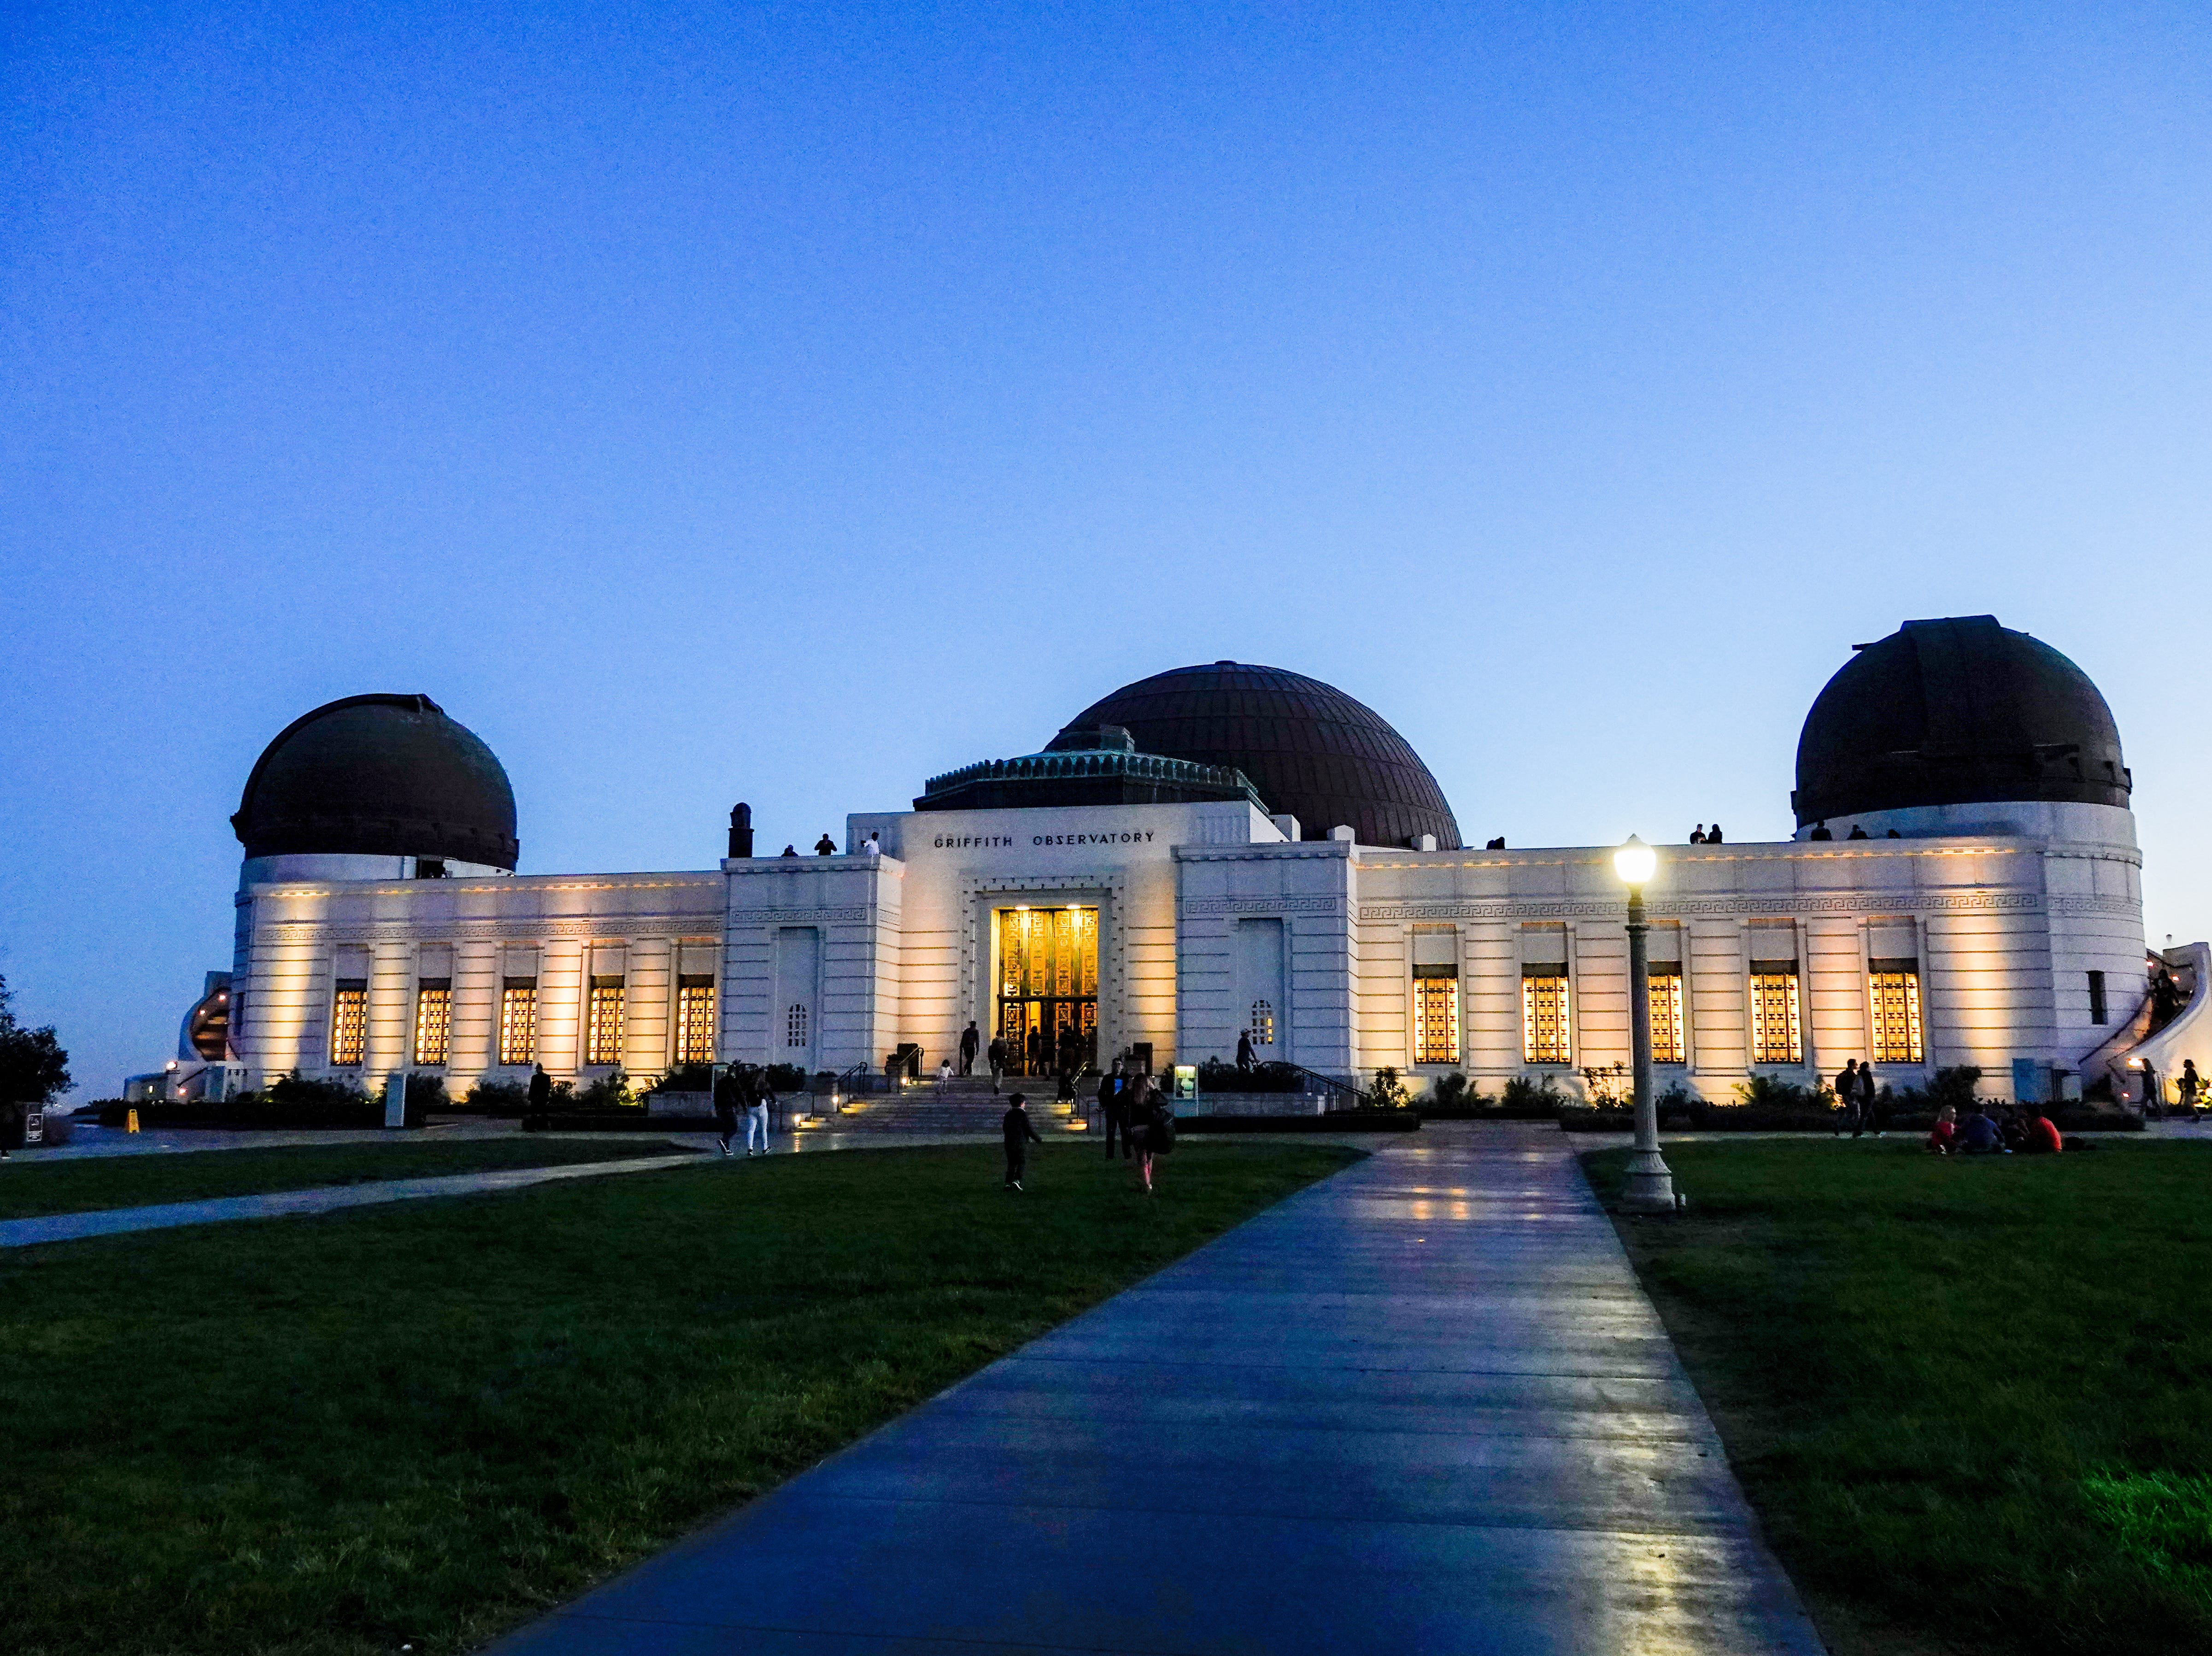 The Observatory by night, just after sunset